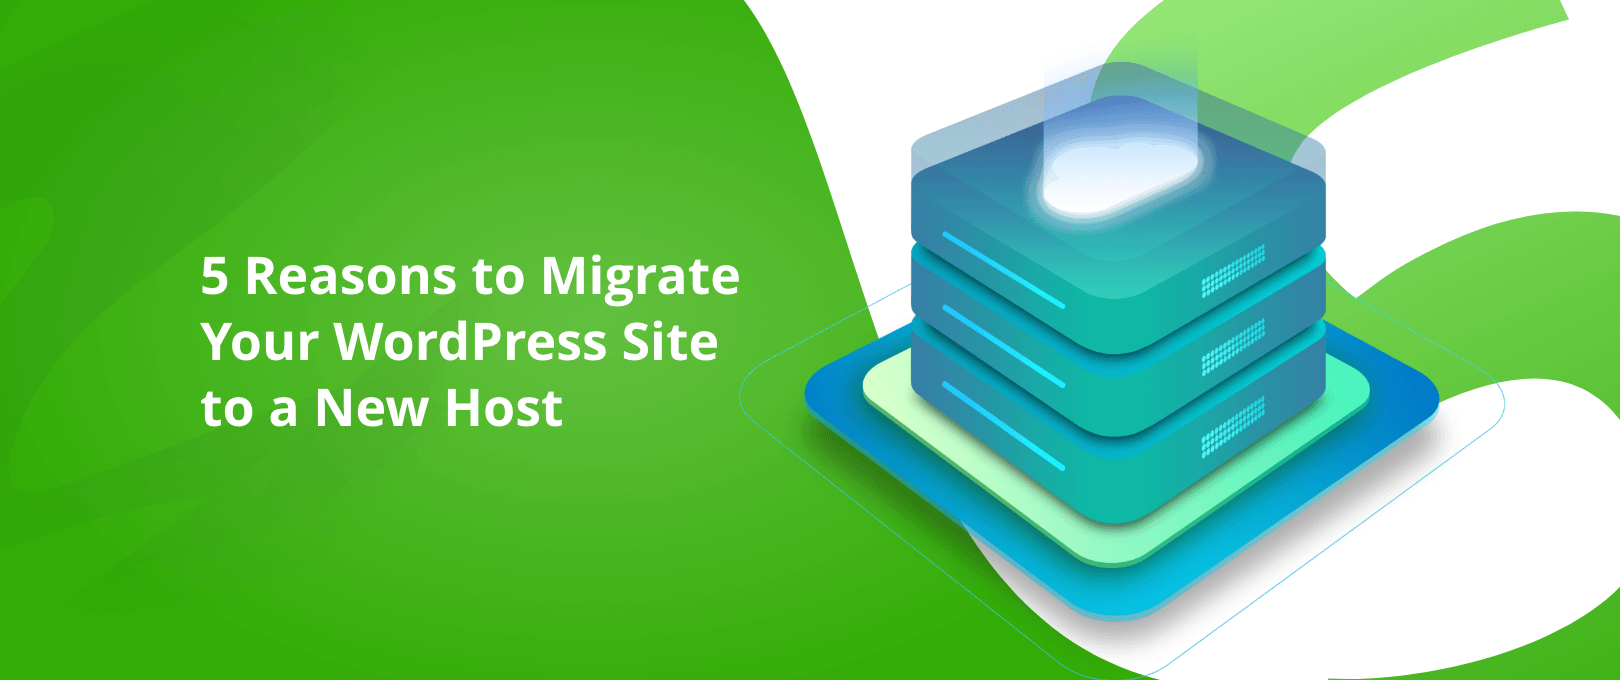 Migrate WordPress site to a new host